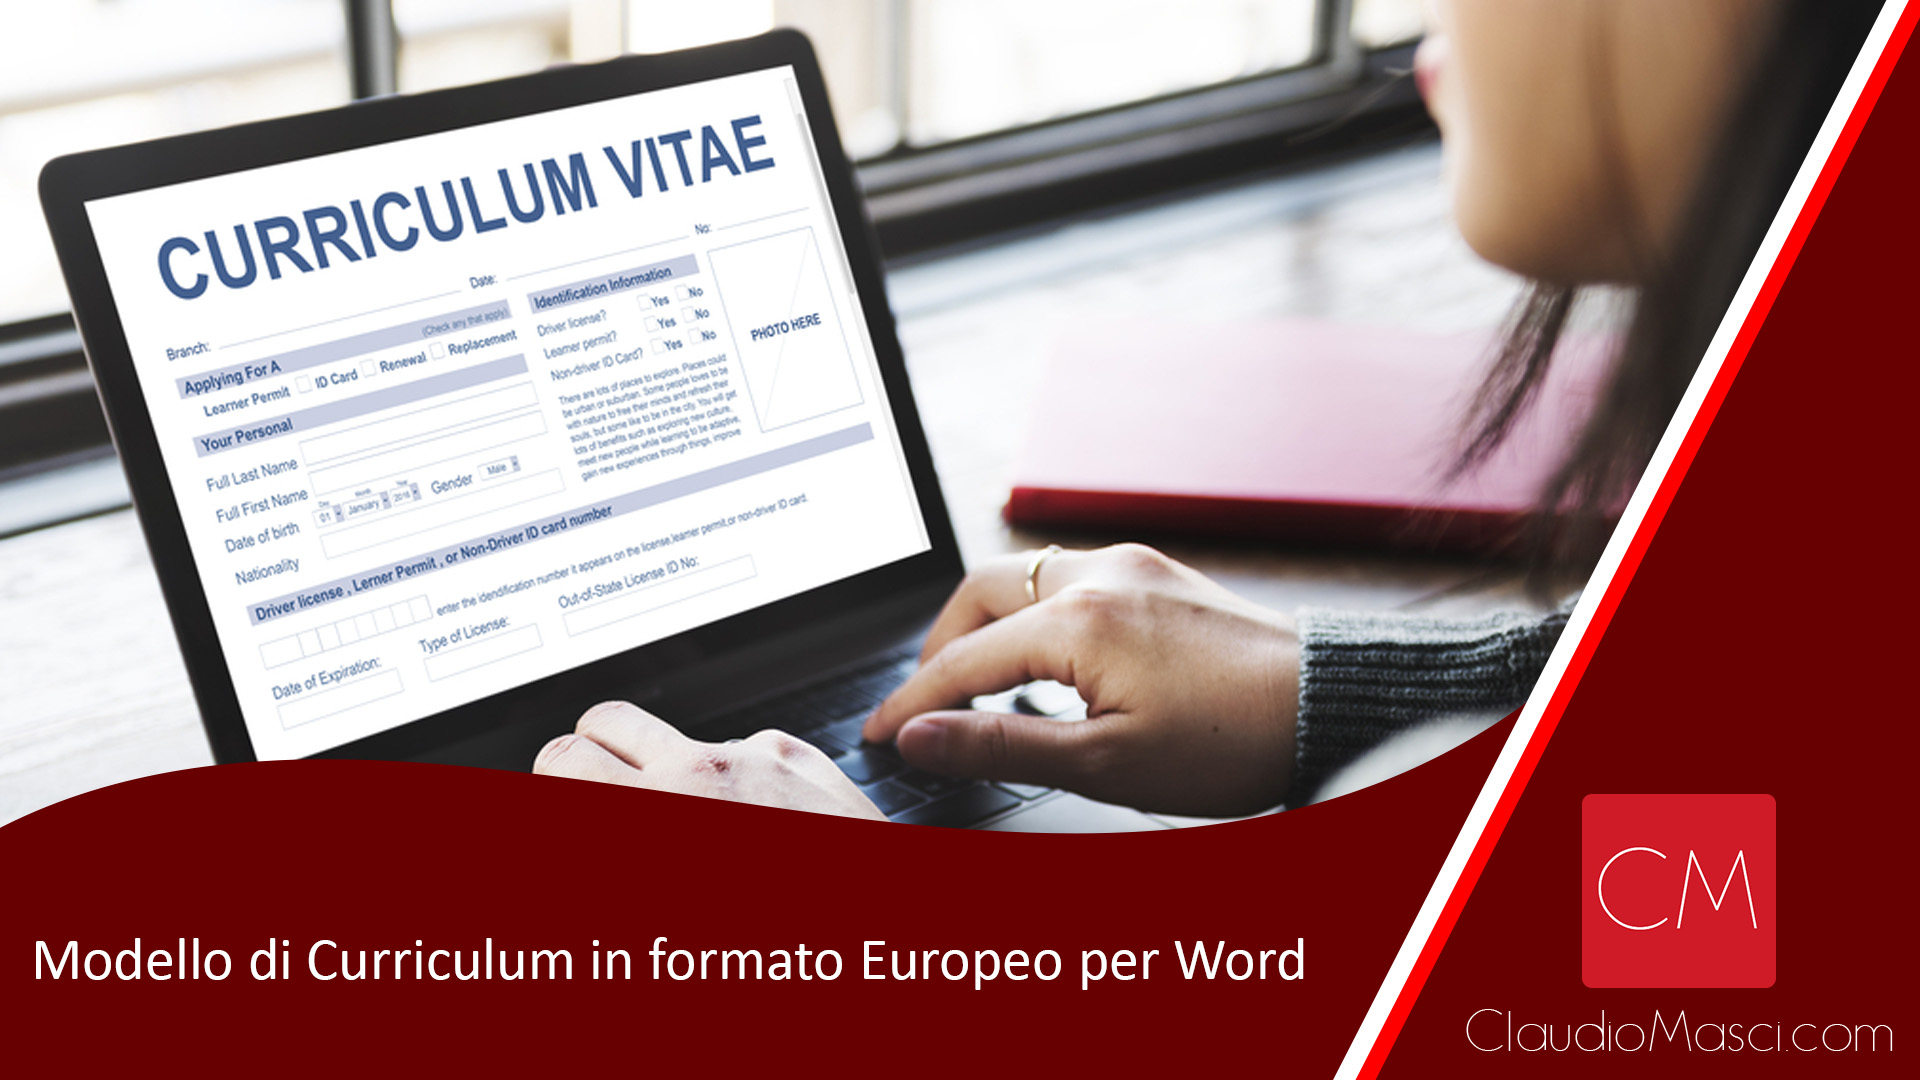 Modello di Curriculum in formato Europeo per Word